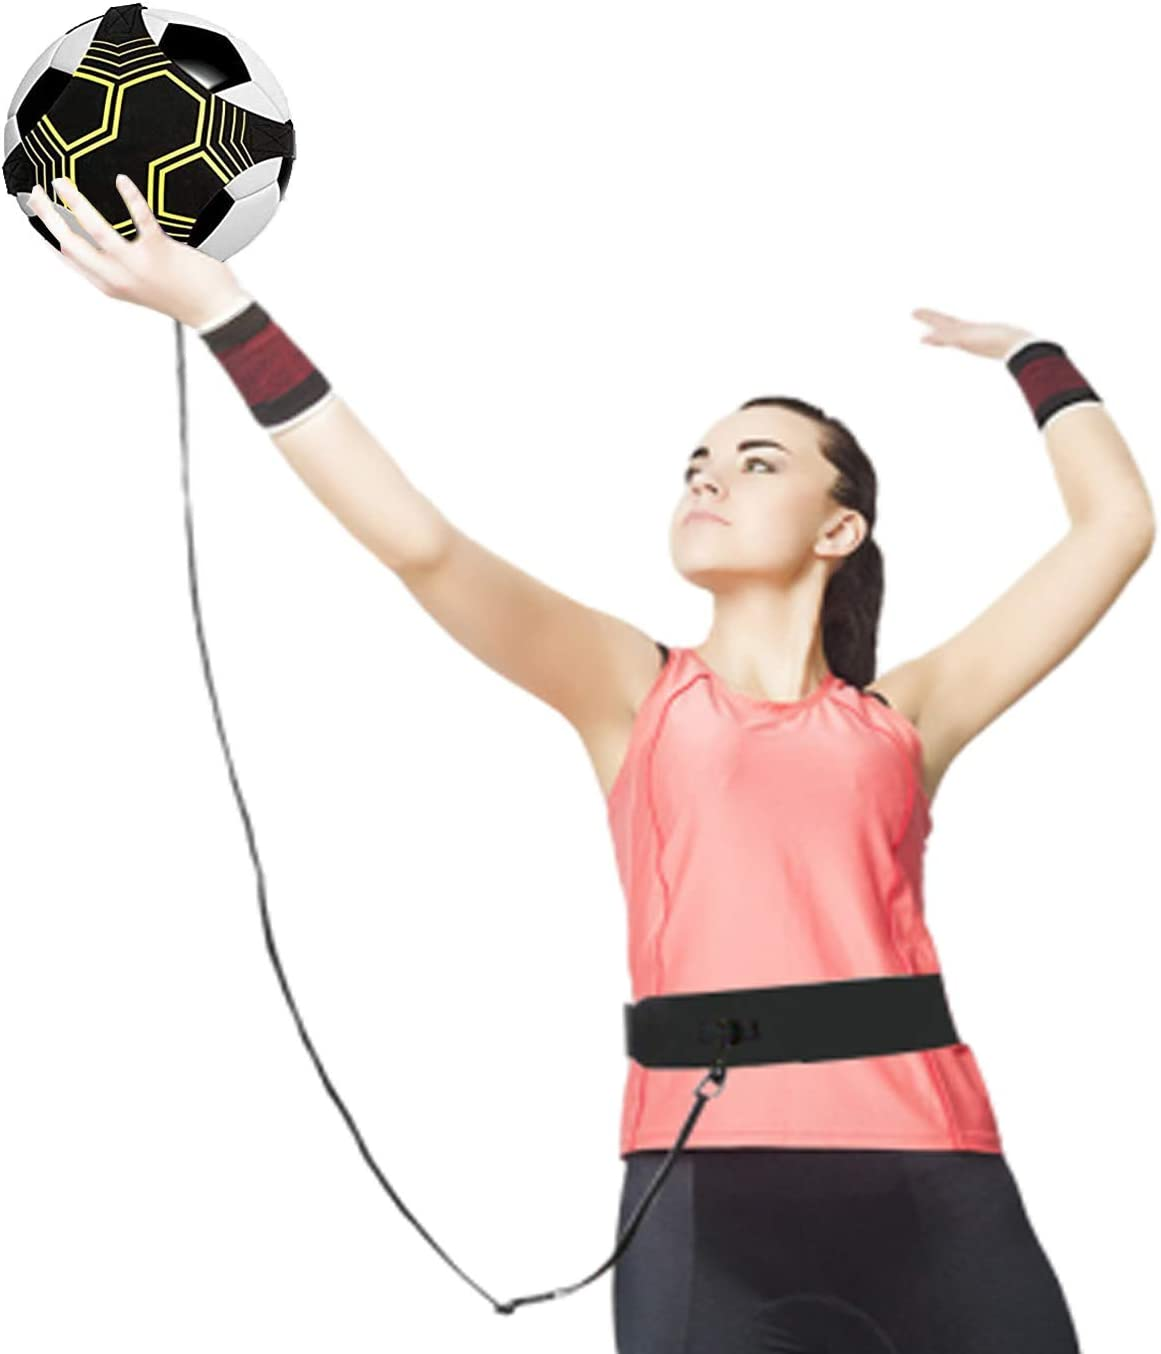 Little World Volleyball Trainer, Volleyball Training Equipment Aid Solo Practice Perfect for Beginners Practicing Serving, Setting and Spiking : Sports & Outdoors